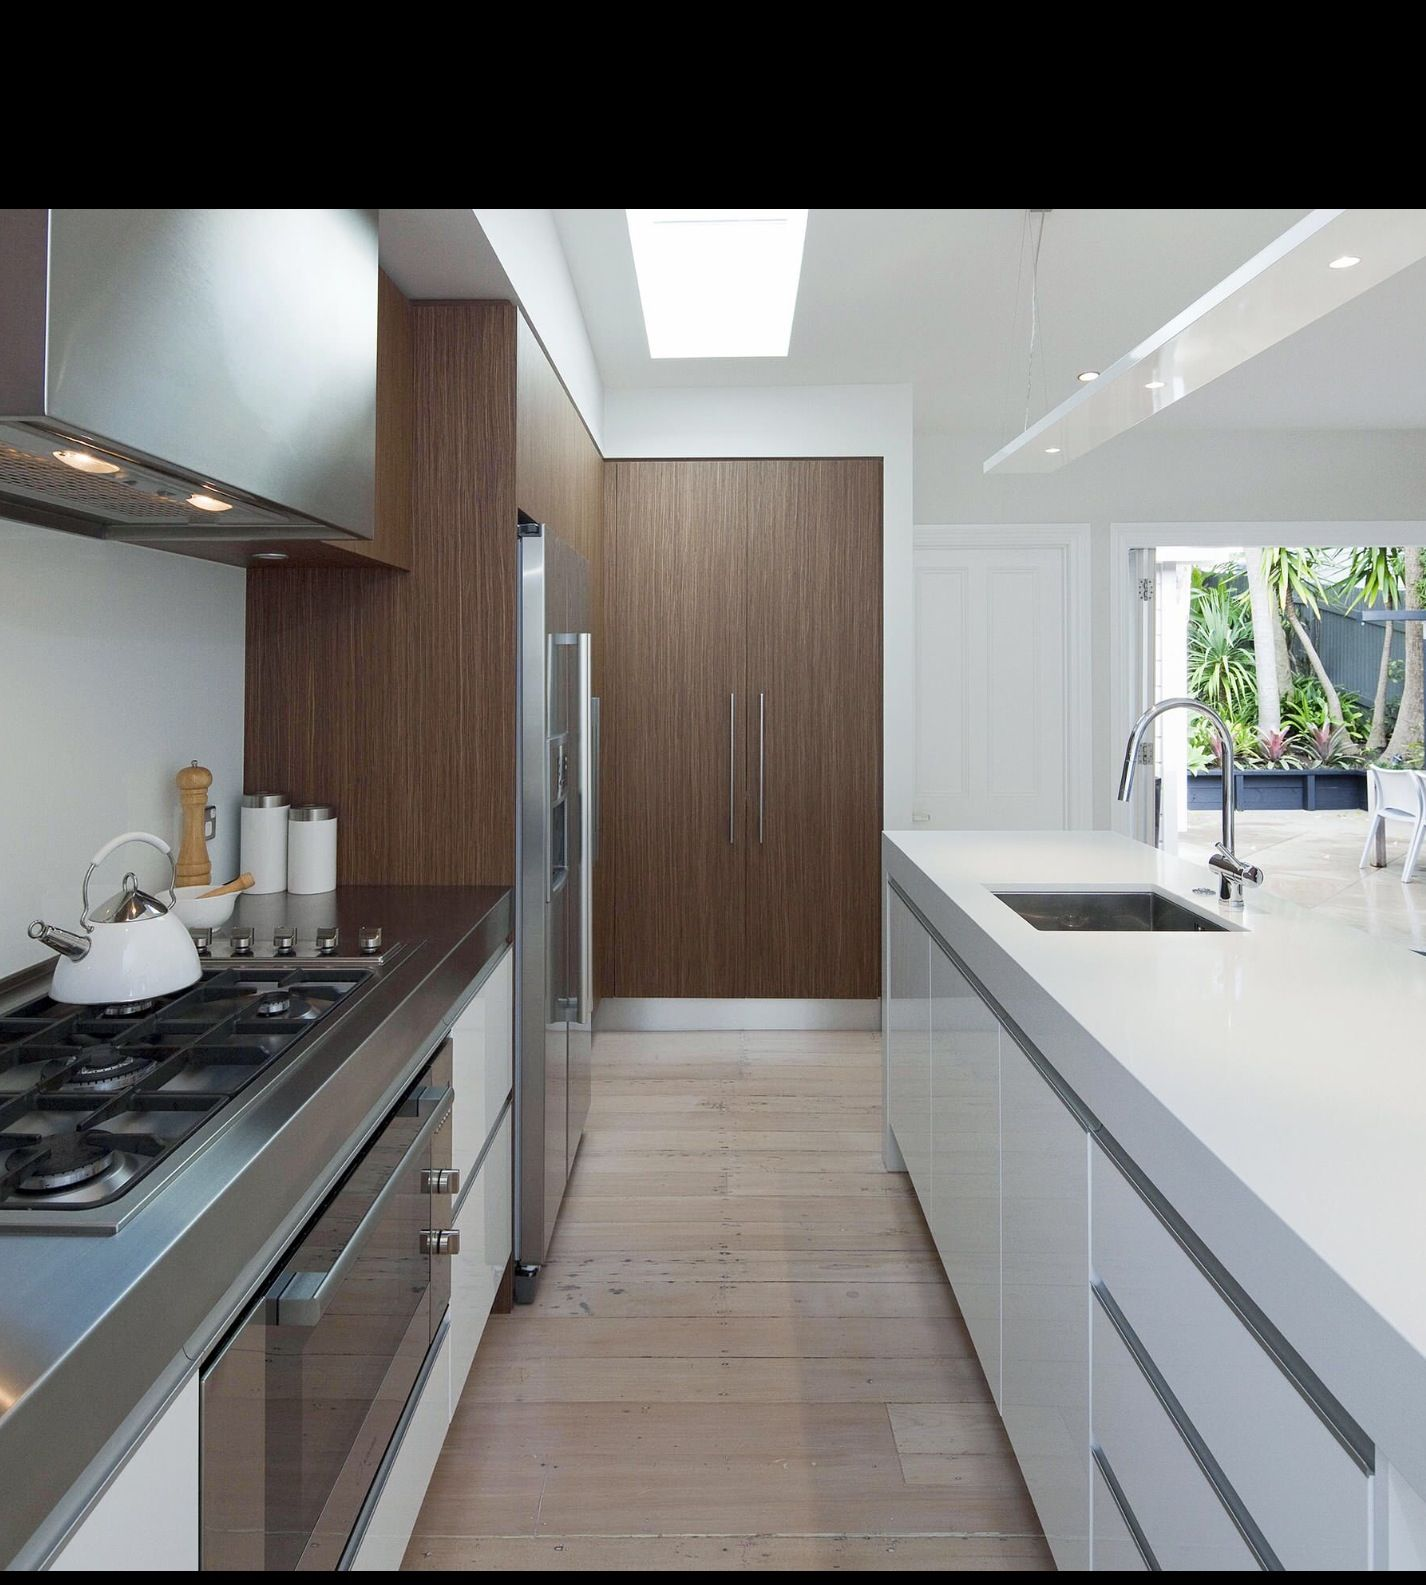 Kitchen Cabinet Makers Perth: Stainless Steel Bench And Stone Island Bench